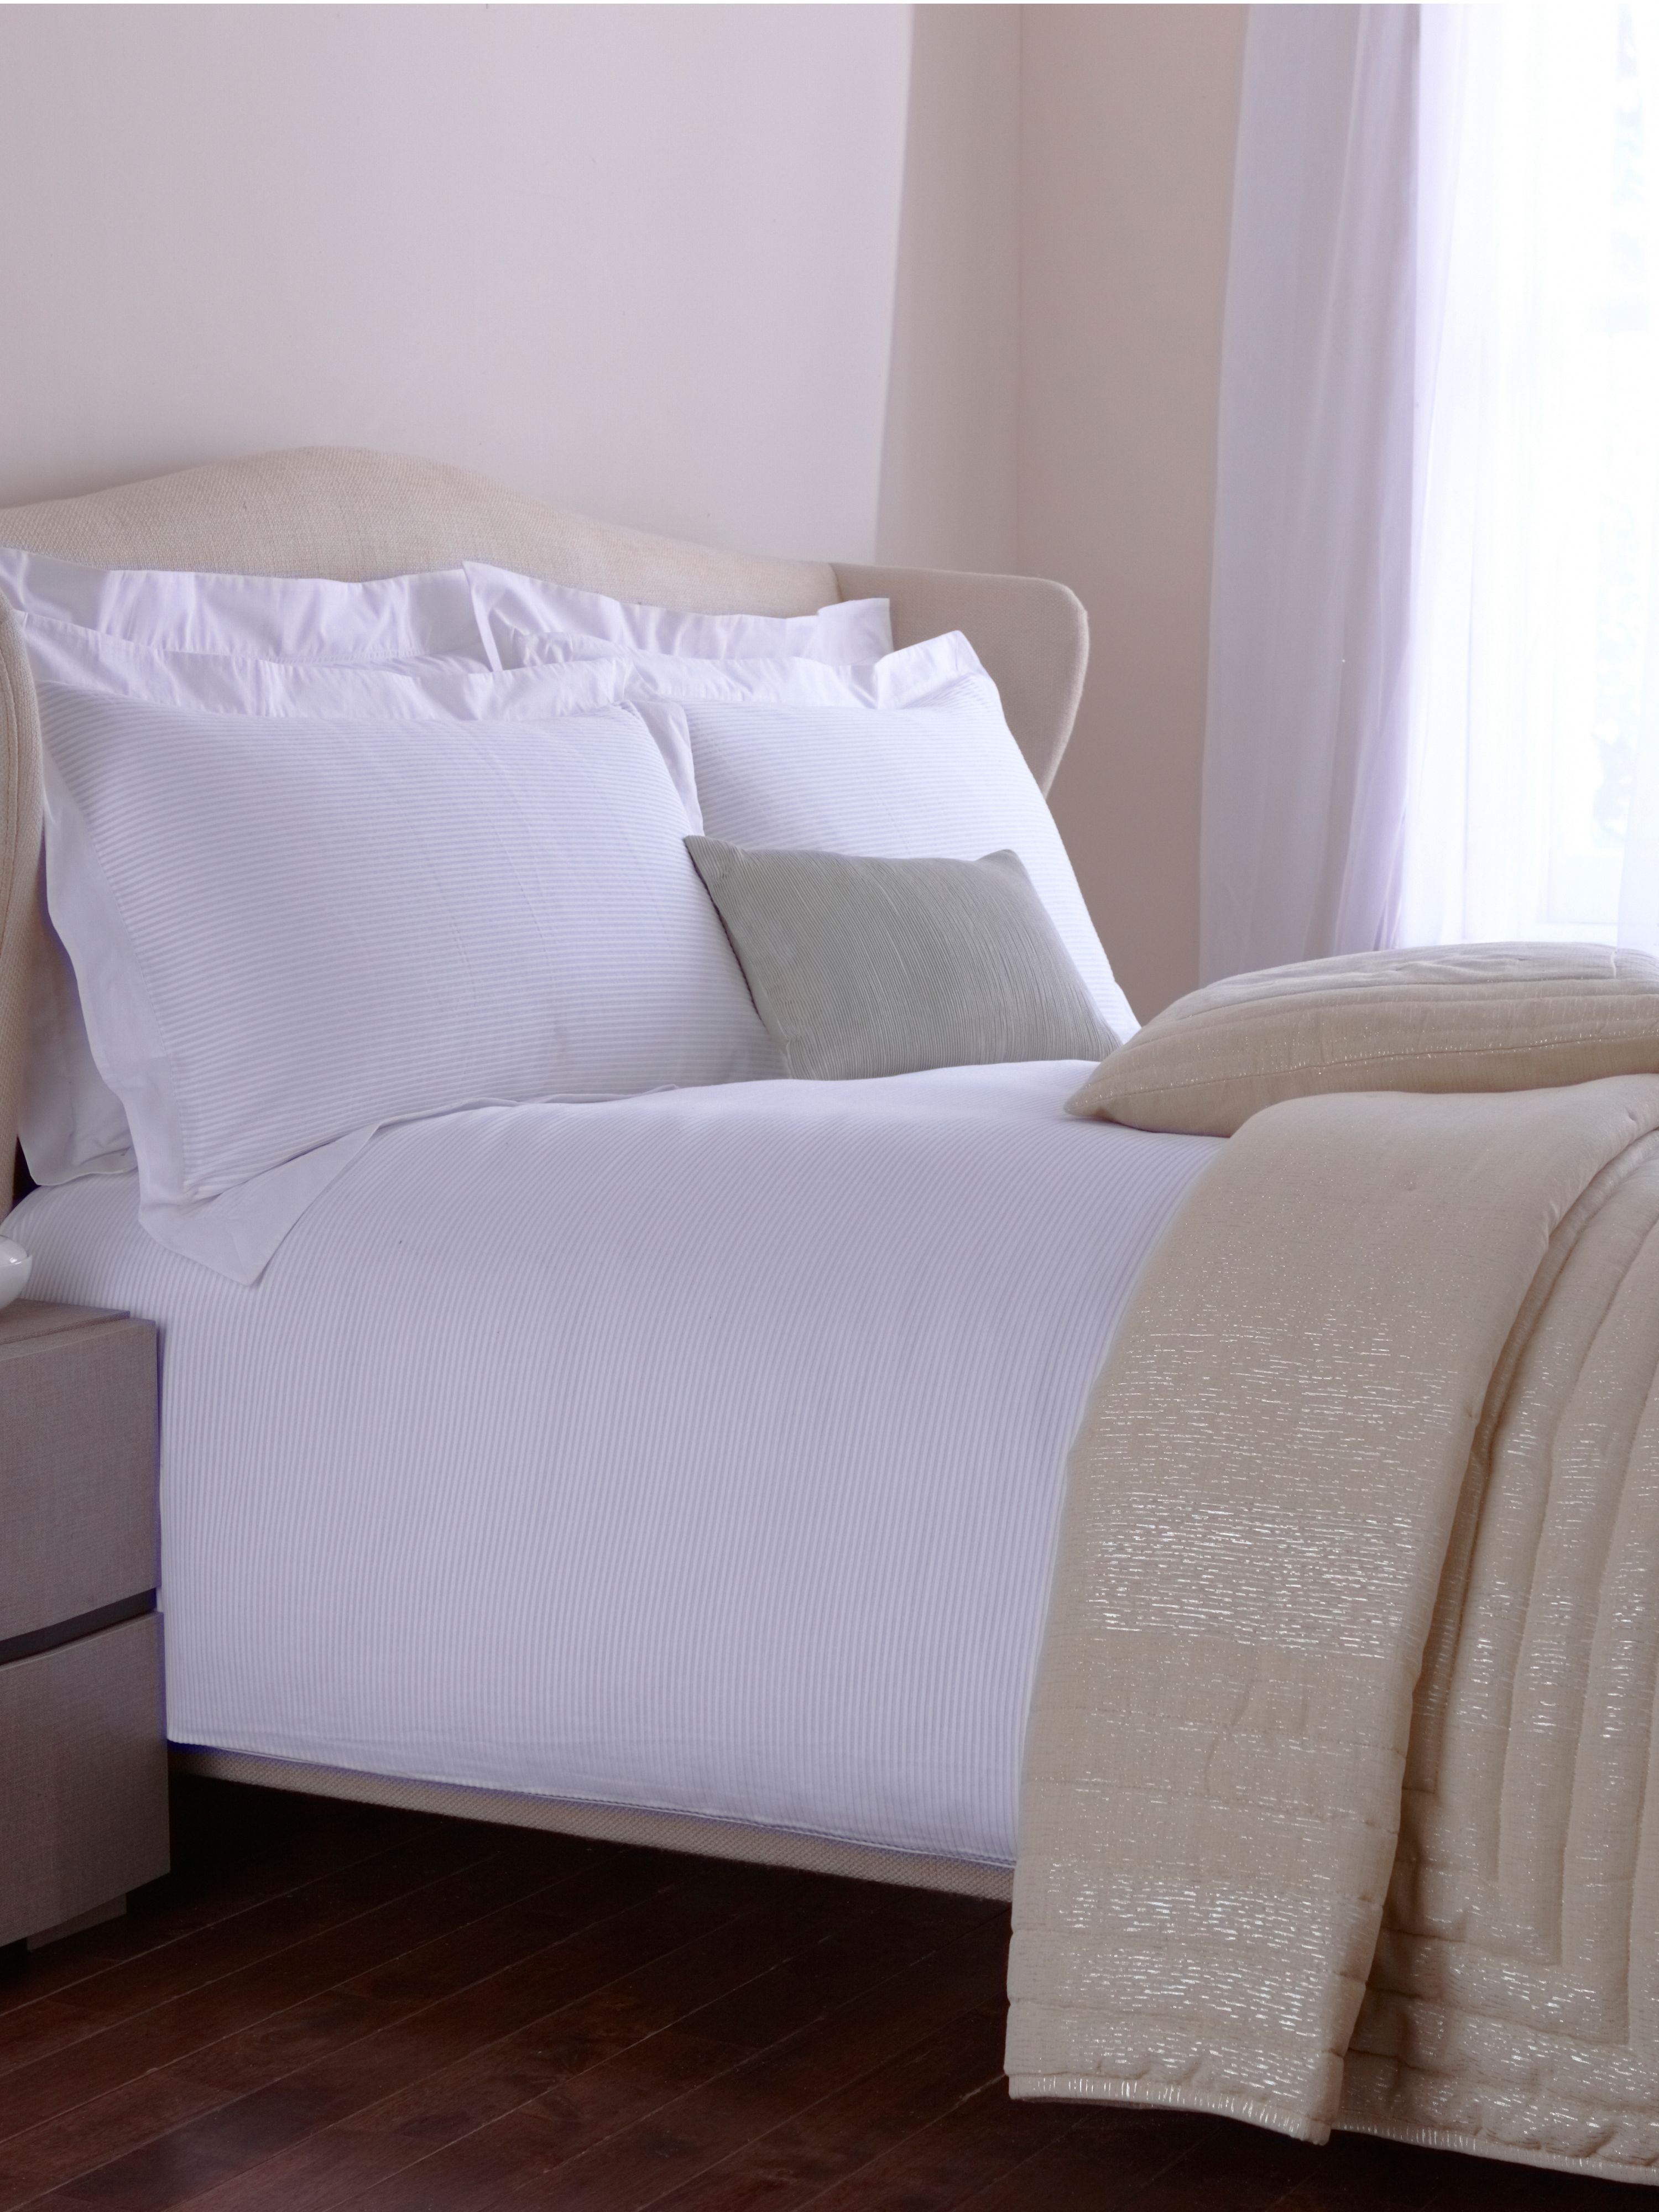 Kensington bed linen in white